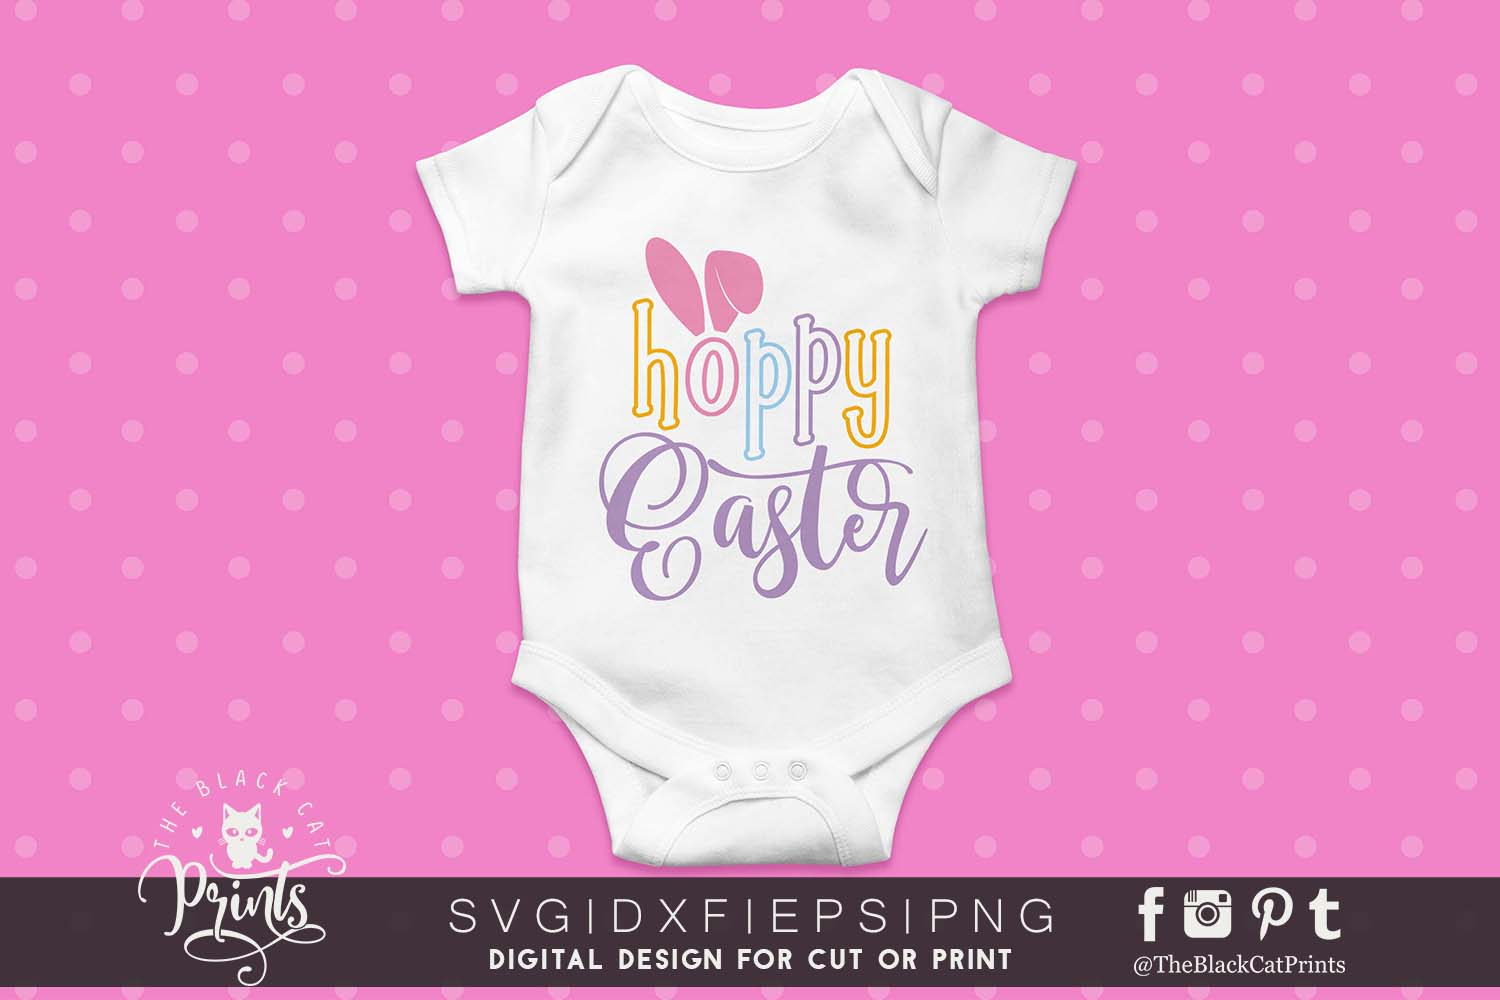 Hoppy Easter SVG DXF PNG EPS example image 3